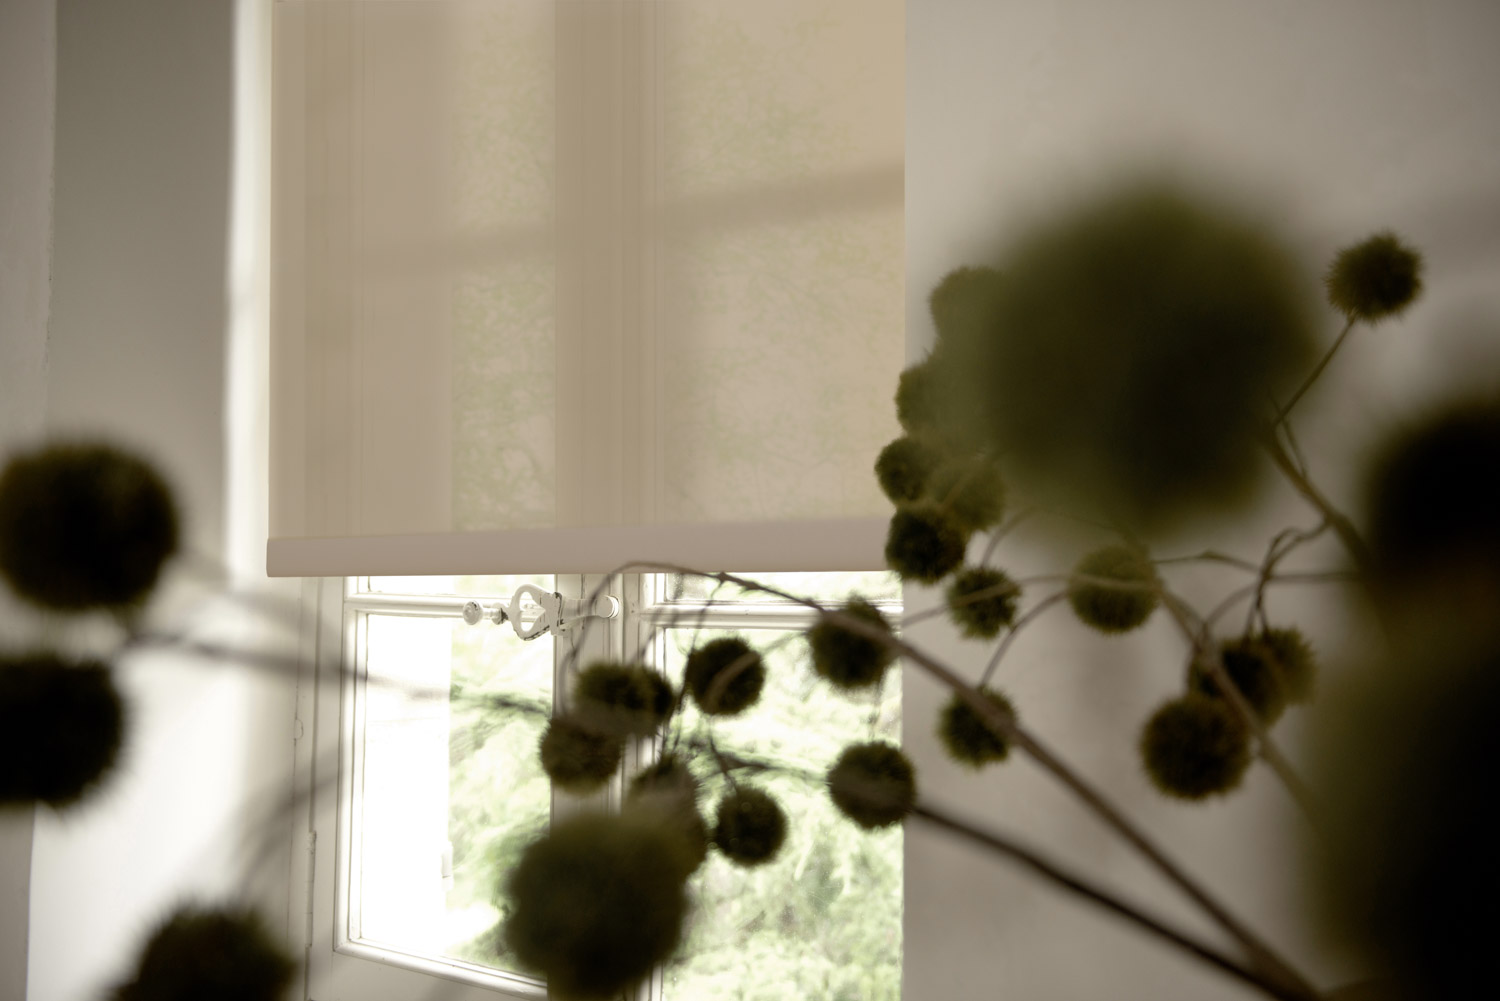 Solar shades in 3% material block harmful UV rays, but still help your indoor plants grow.